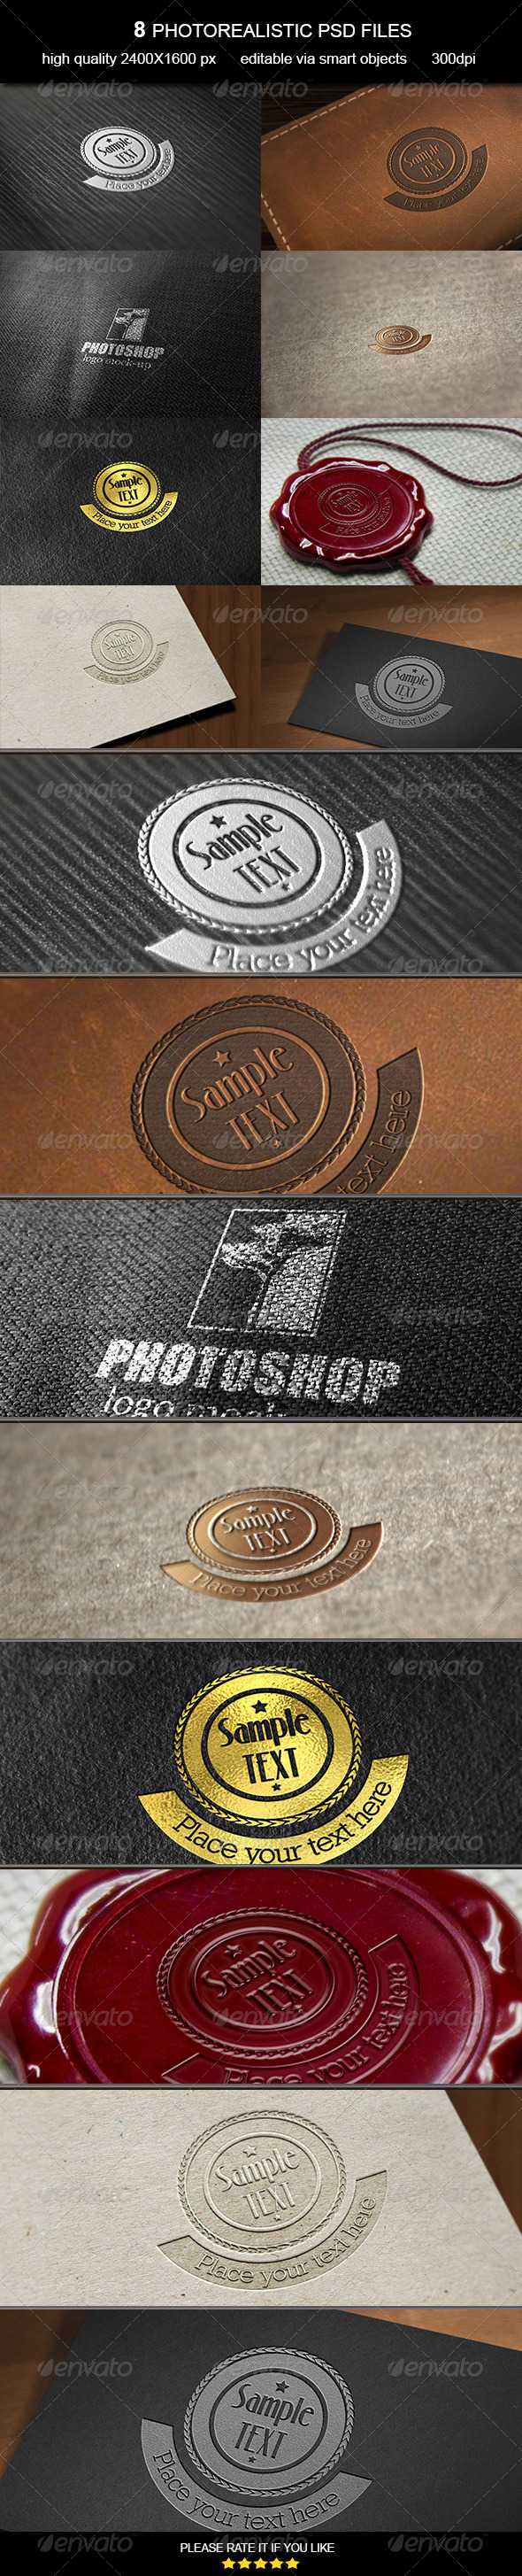 Logo Mock-Up Vol. 7 - Logo Product Mock-Ups